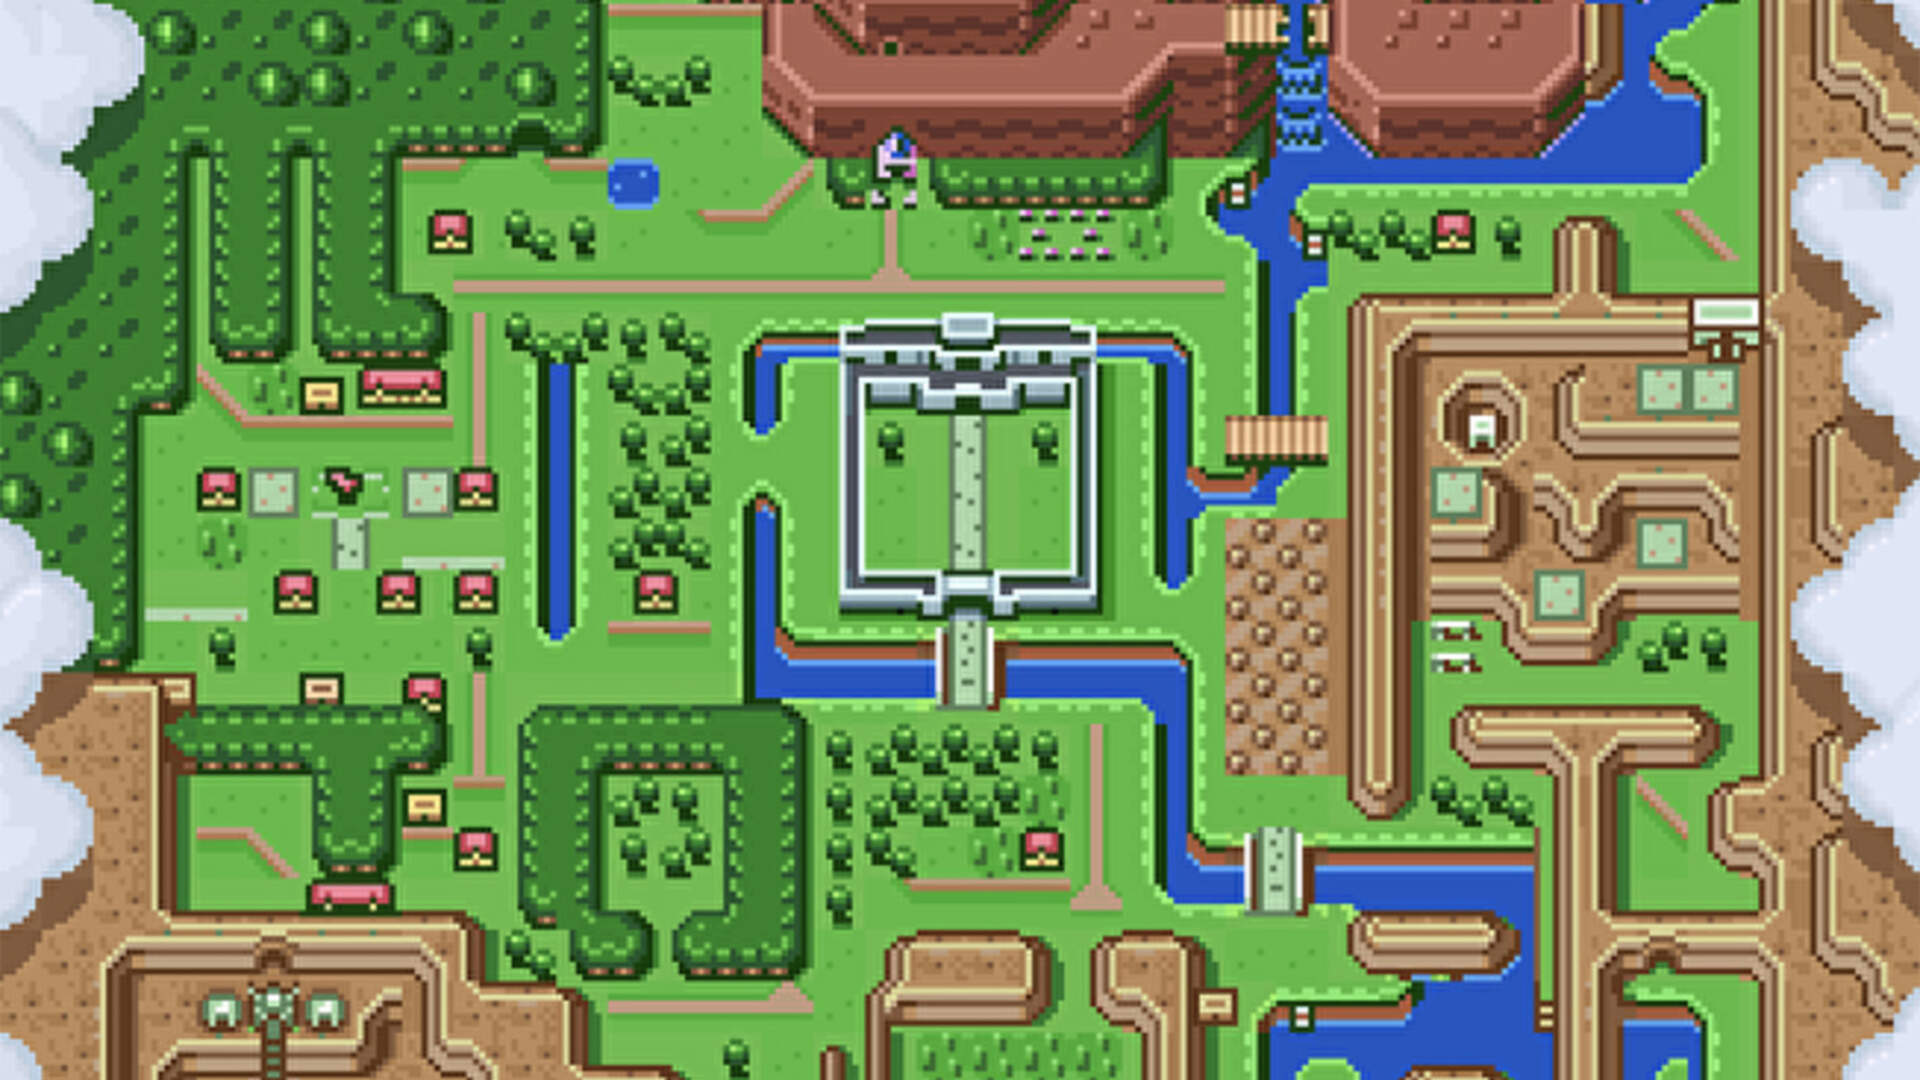 20 Amazing In-Game Maps That Did More Than Show the Way Forward